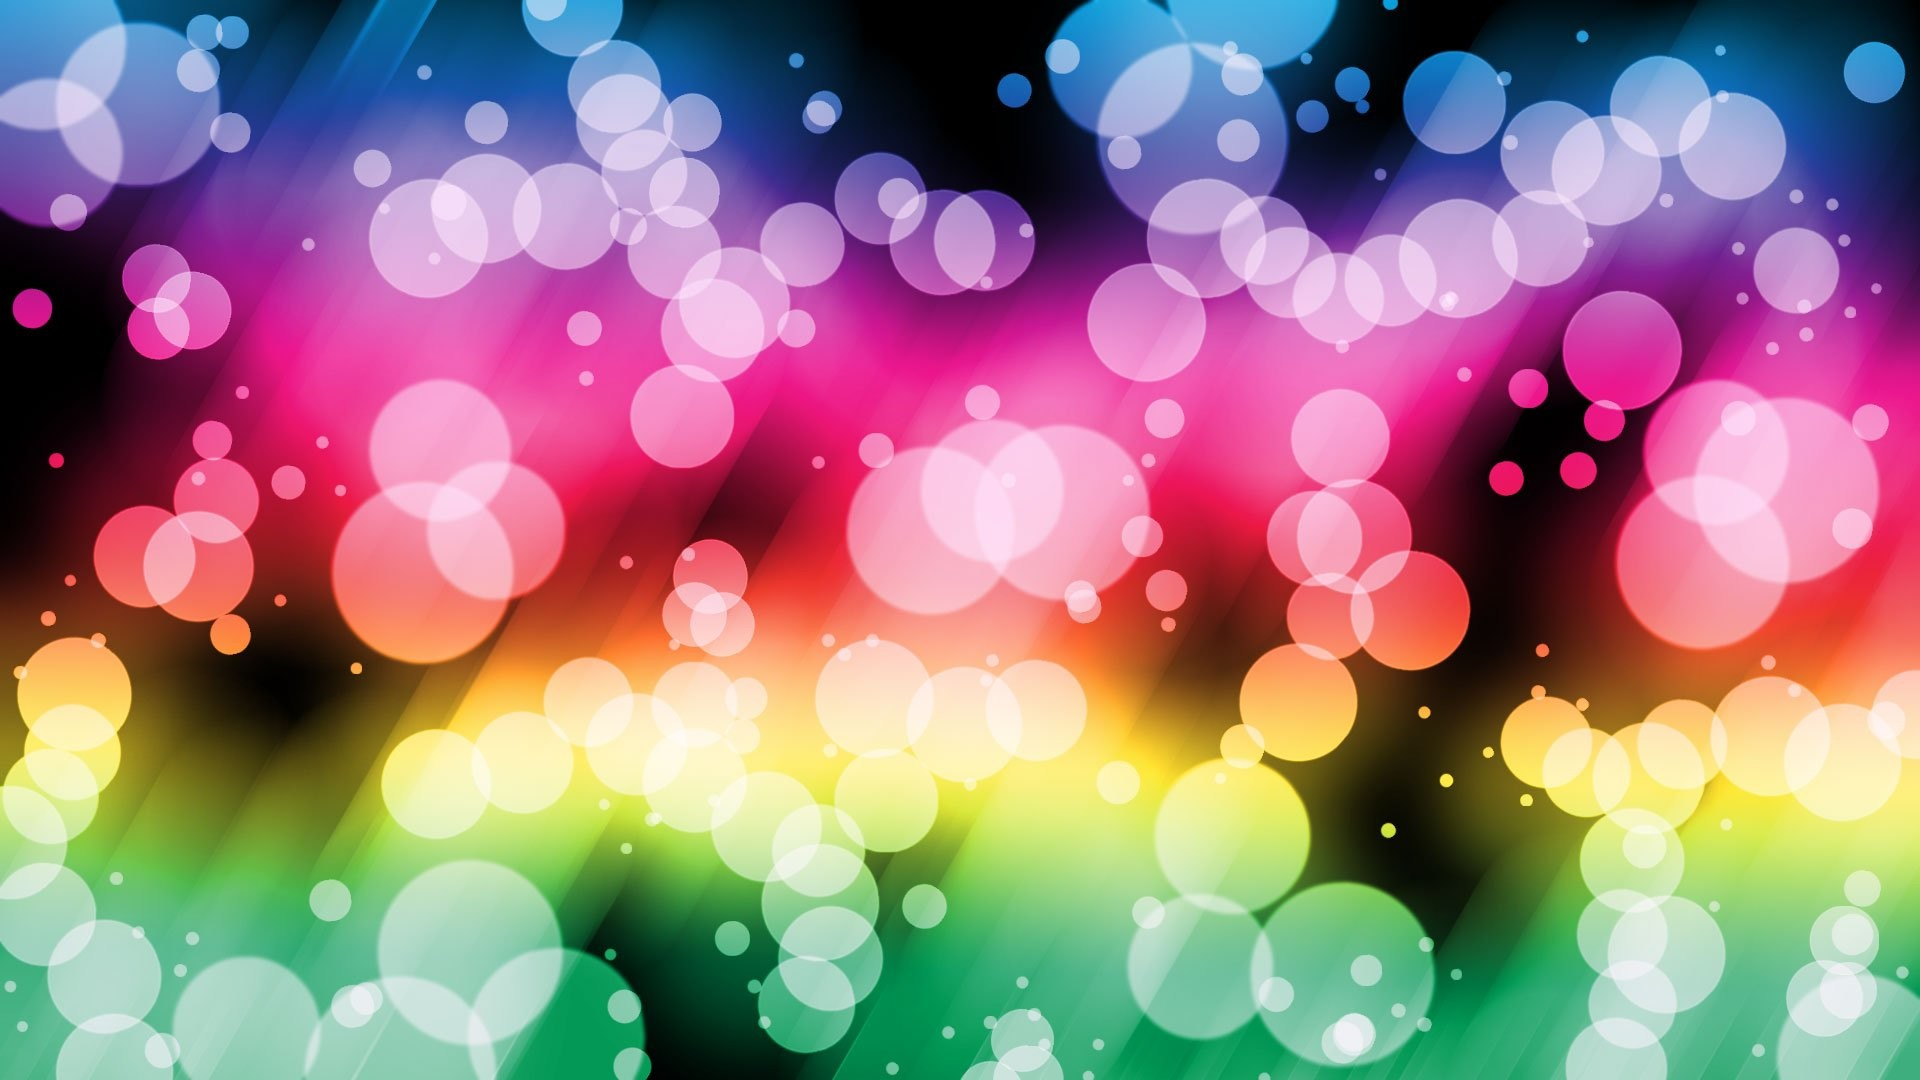 Colourful Iphone X Wallpaper Rainbow Stars Backgrounds 183 ①